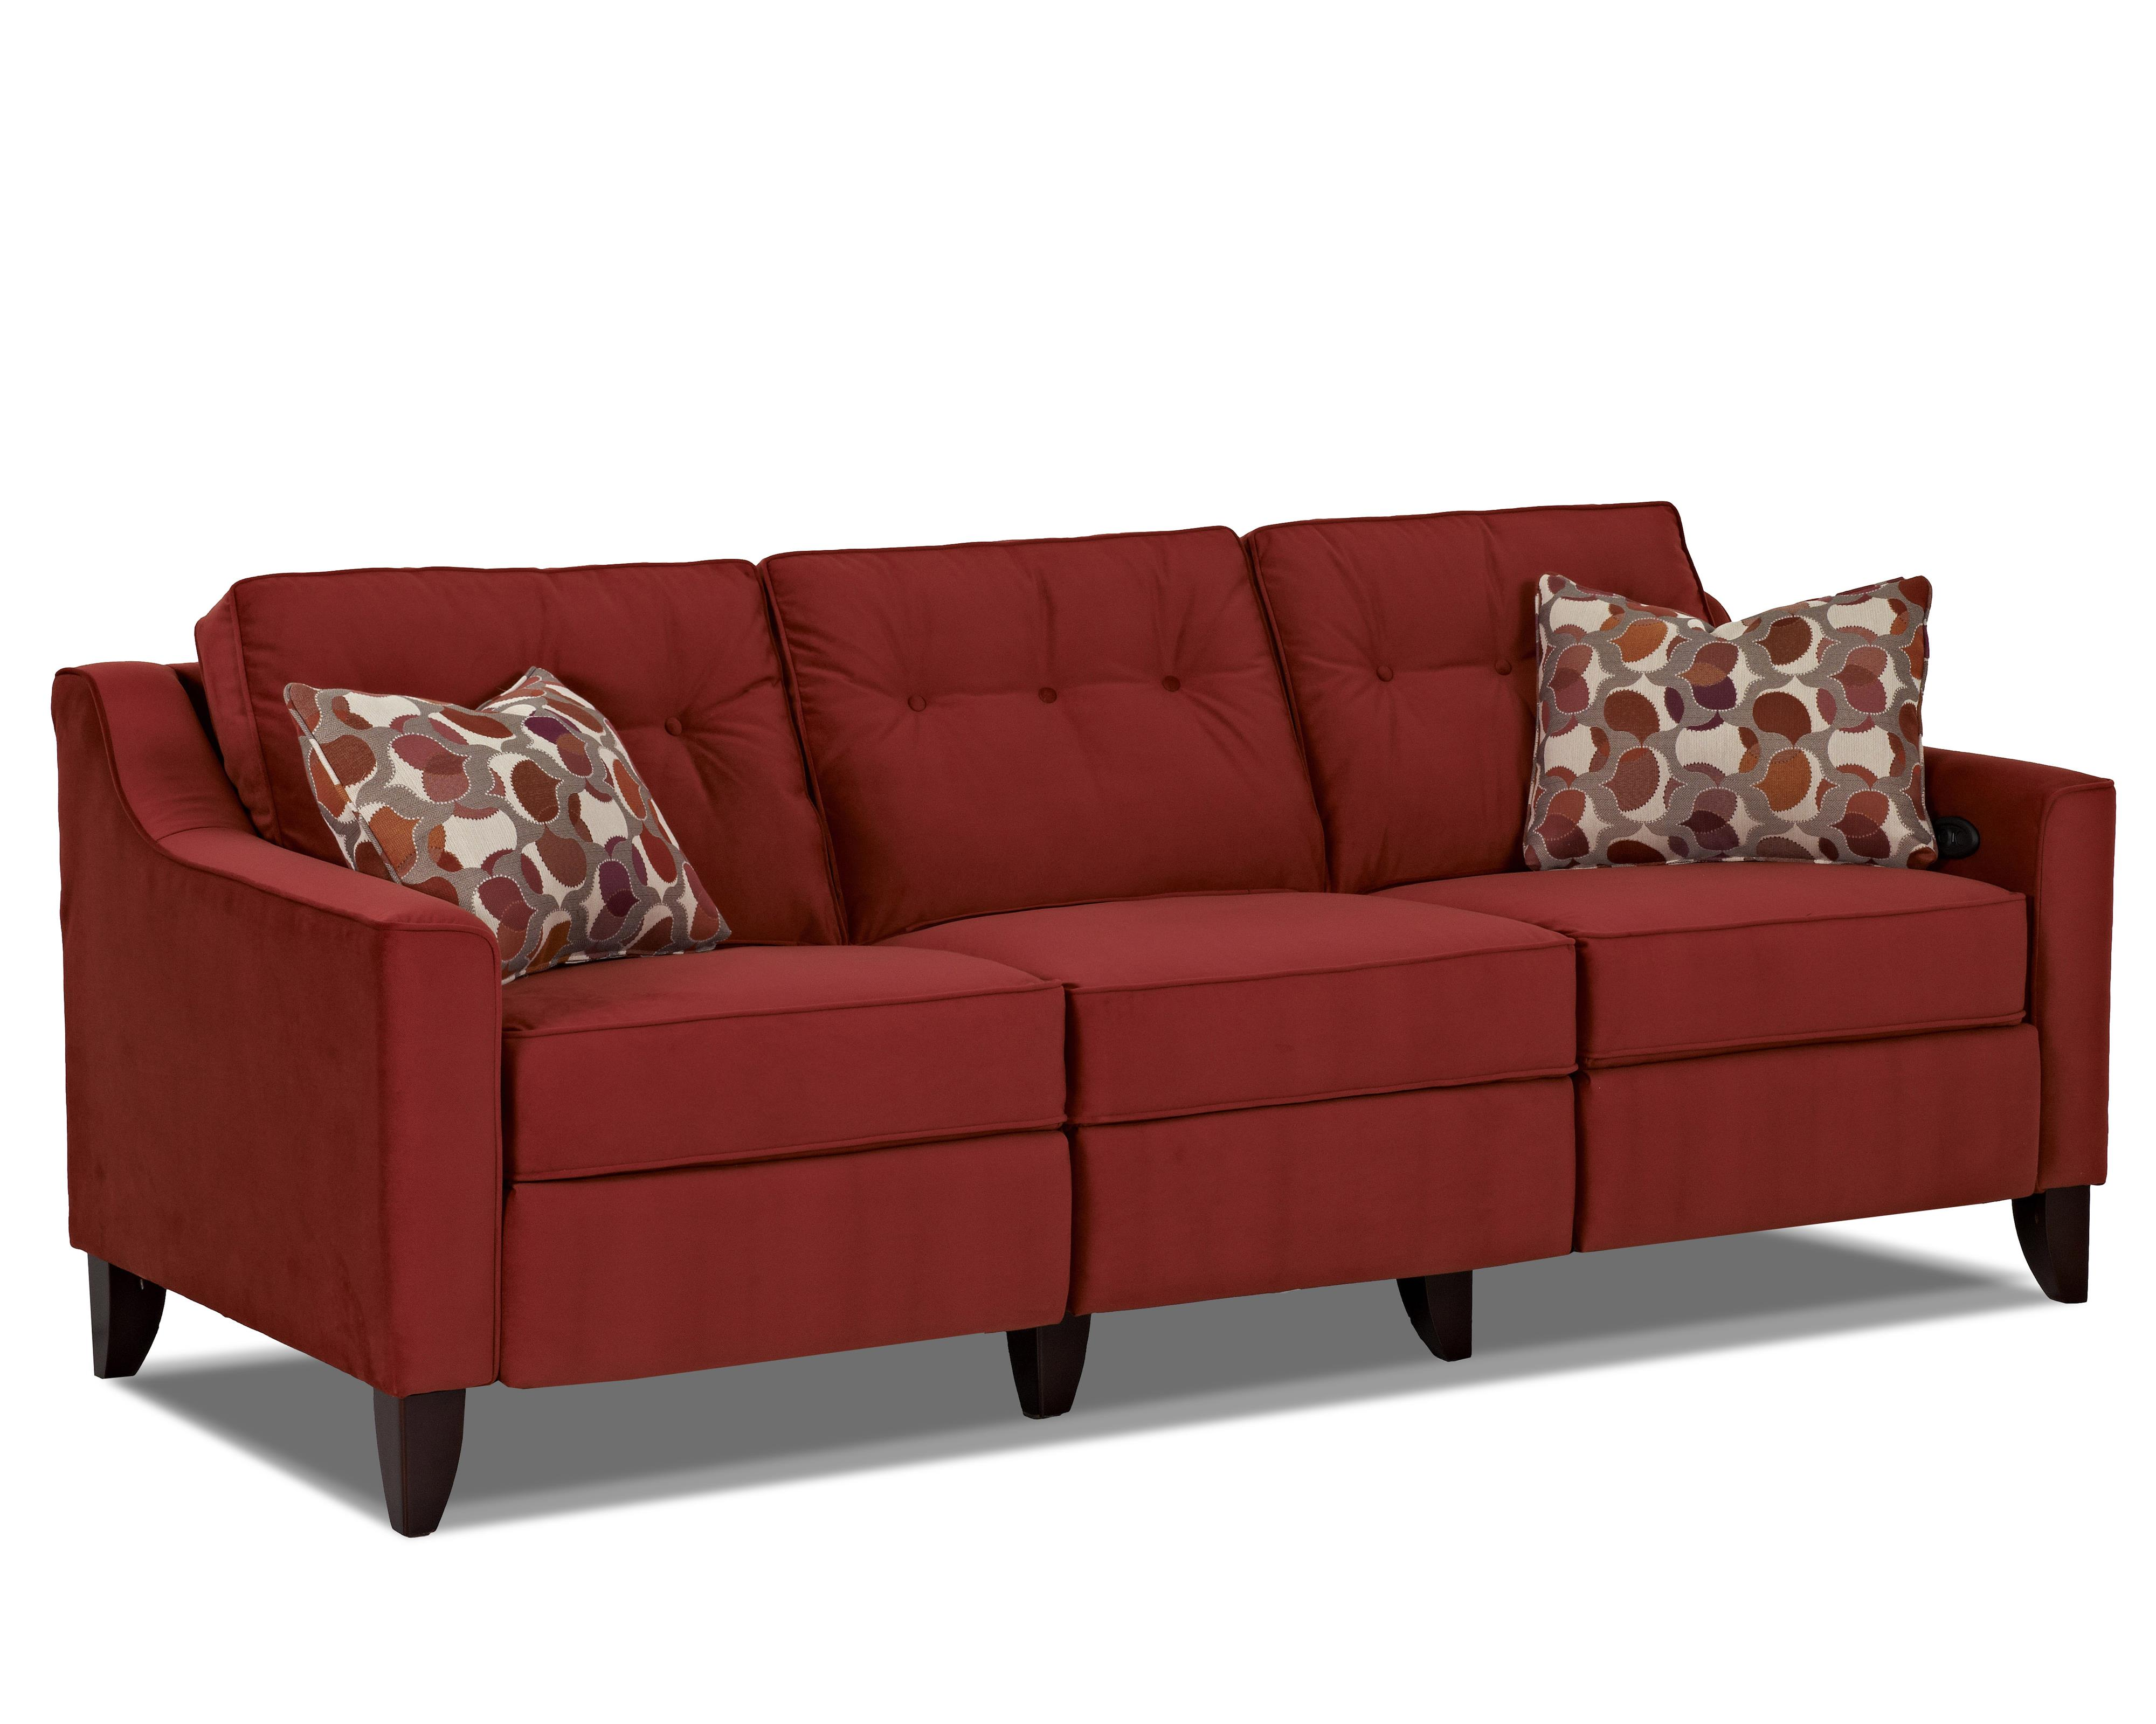 Trisha Yearwood Home Collection by Klaussner Audrina Power Reclining Sofa - Item Number: 31603 PWRS-OakleyTomato